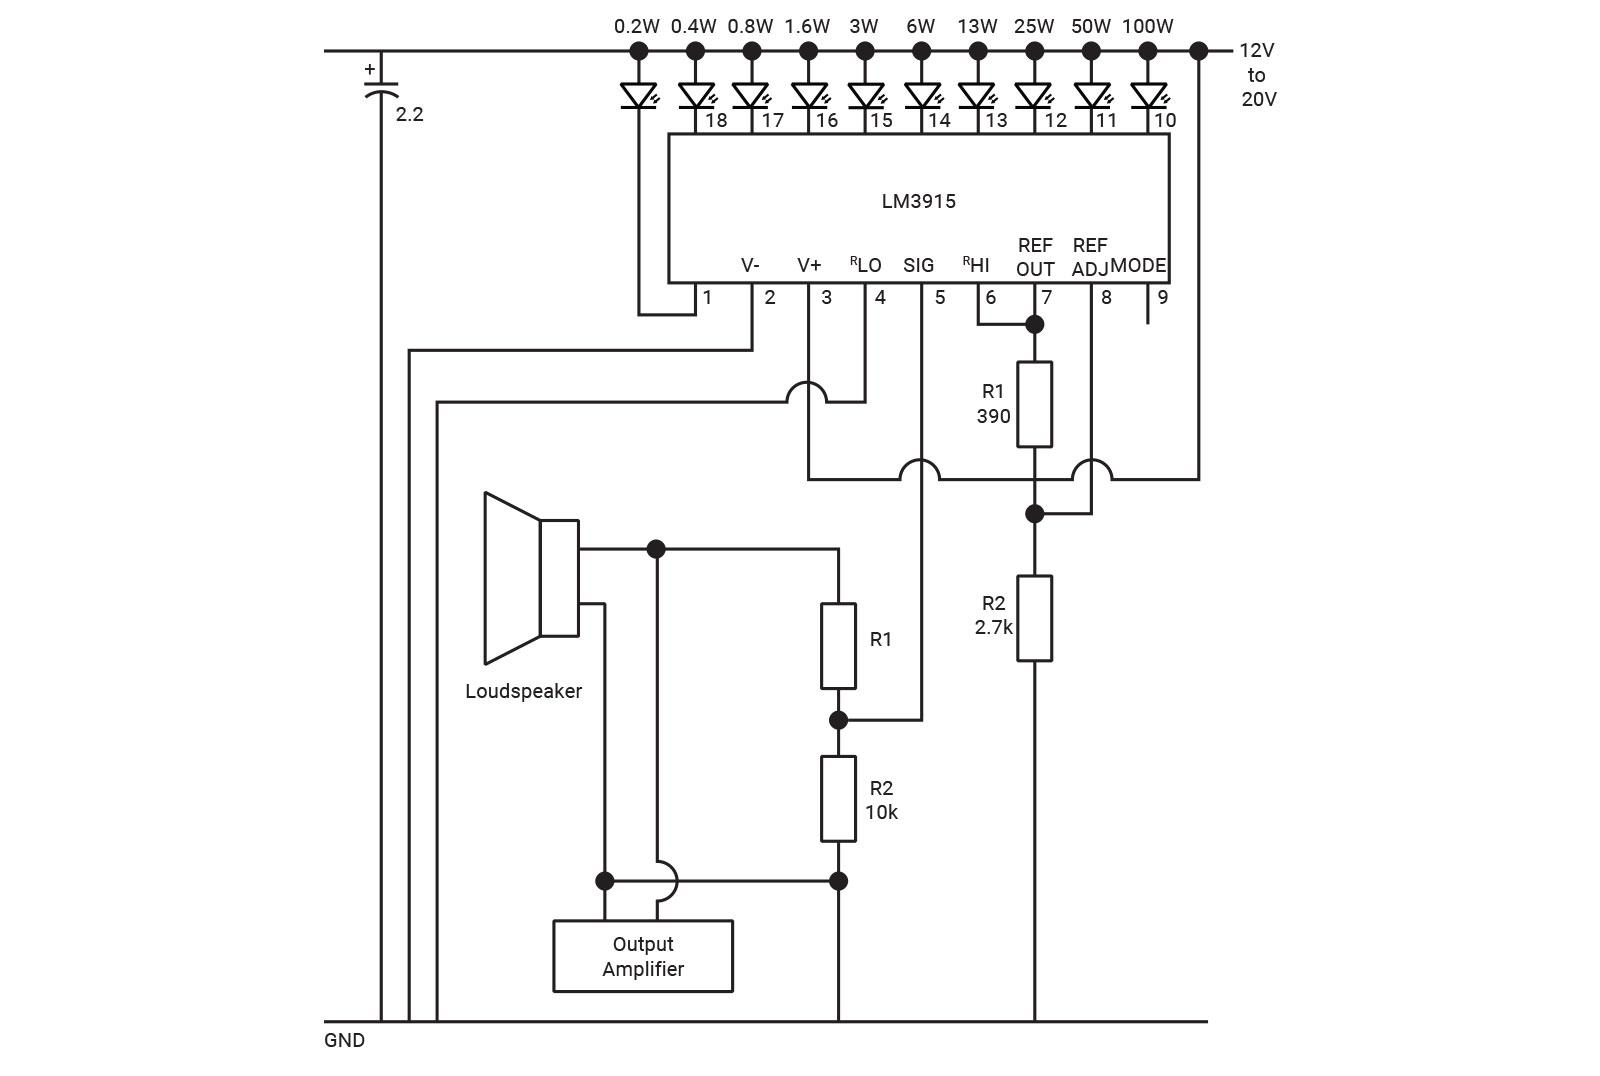 Visual Voice Display Diyode Magazine Lm3915 Vu Meter Circuit Filter I Testing The Withg A Bargraph